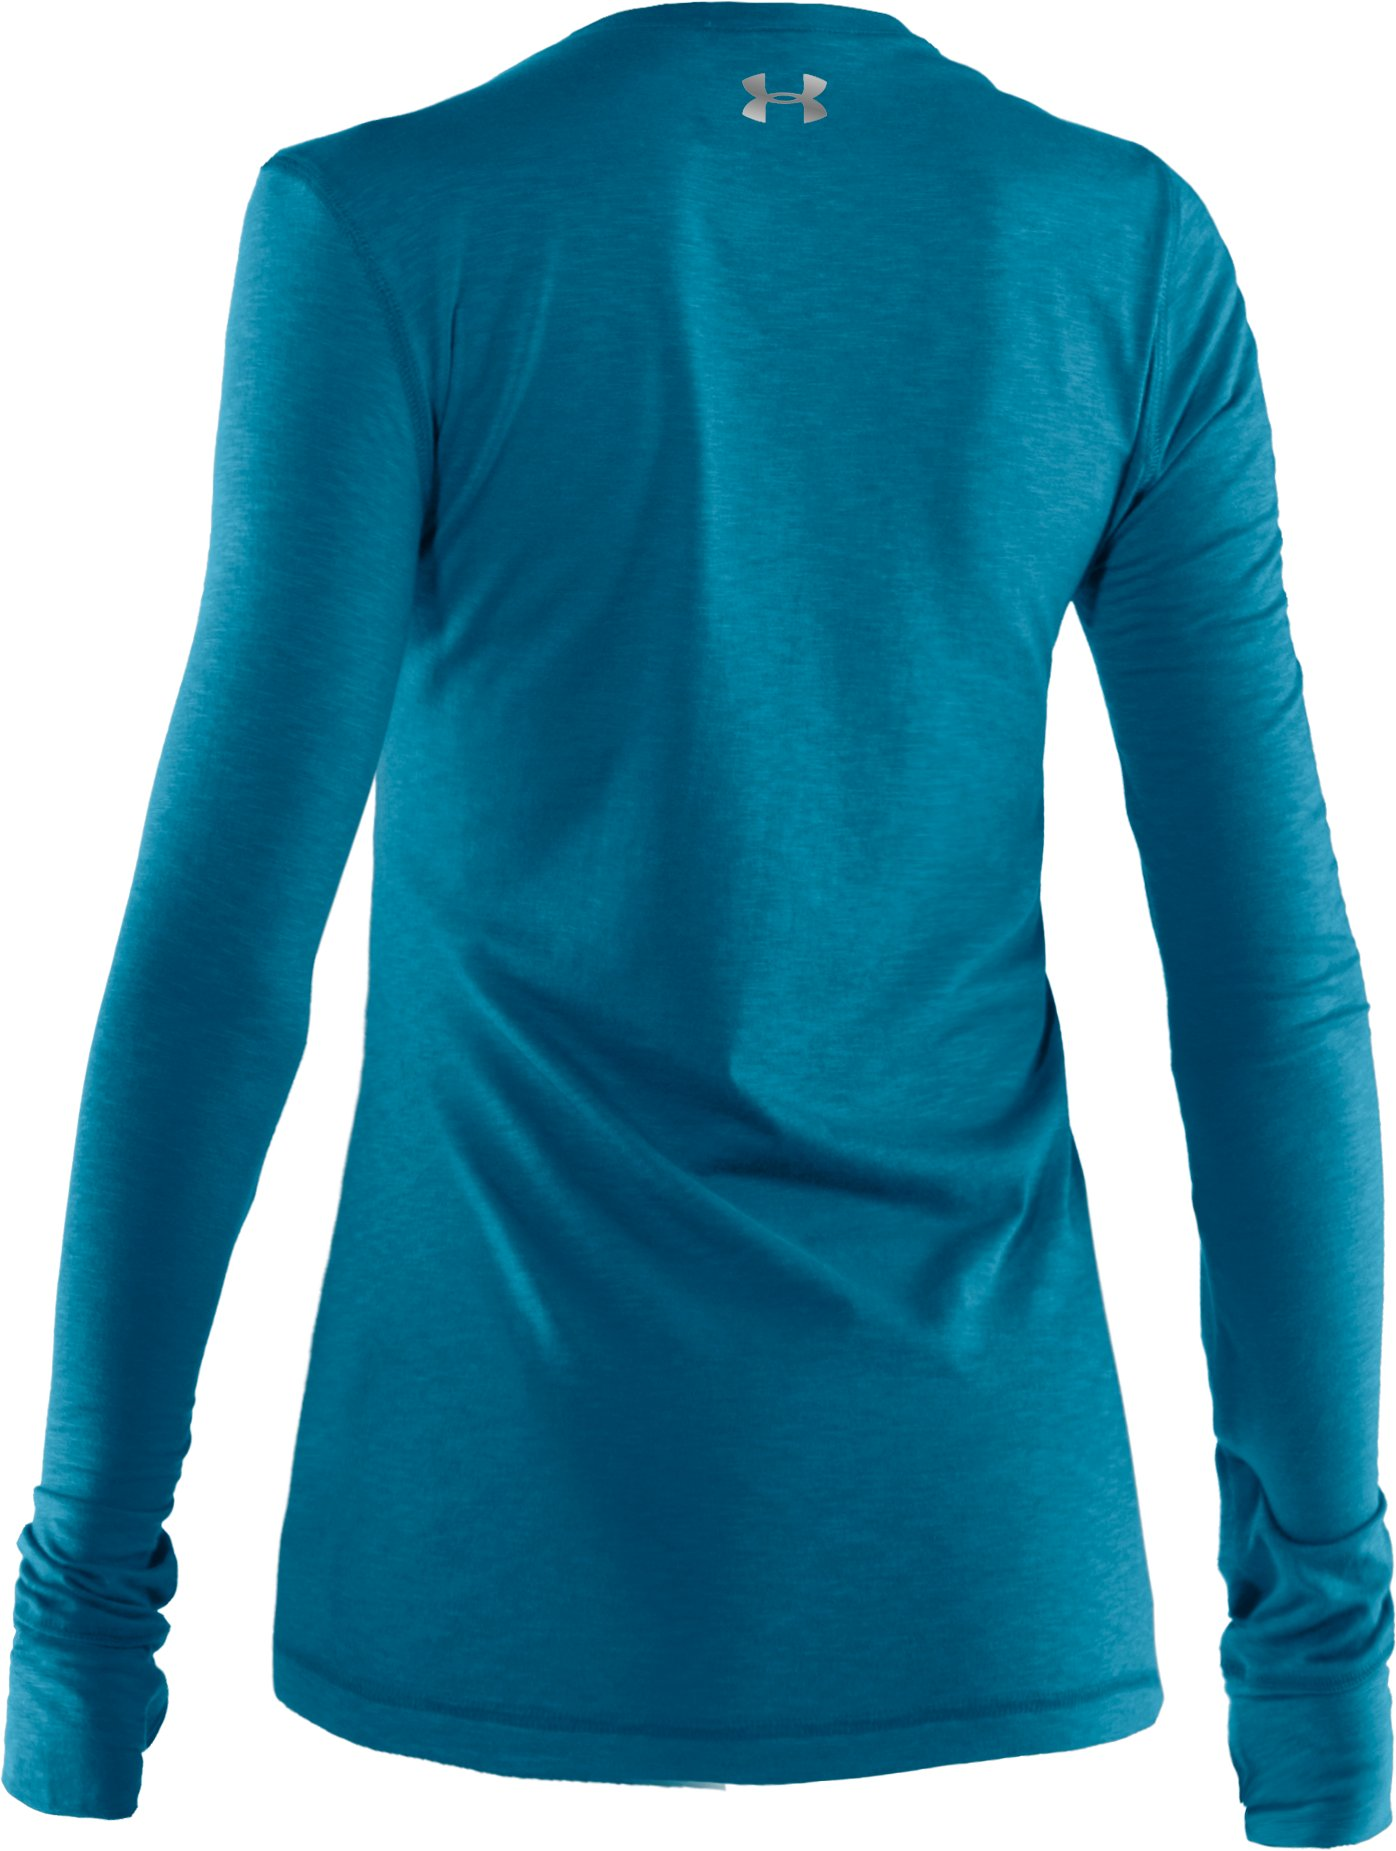 Women's UA Charm Long Sleeve Shirt, Break, undefined